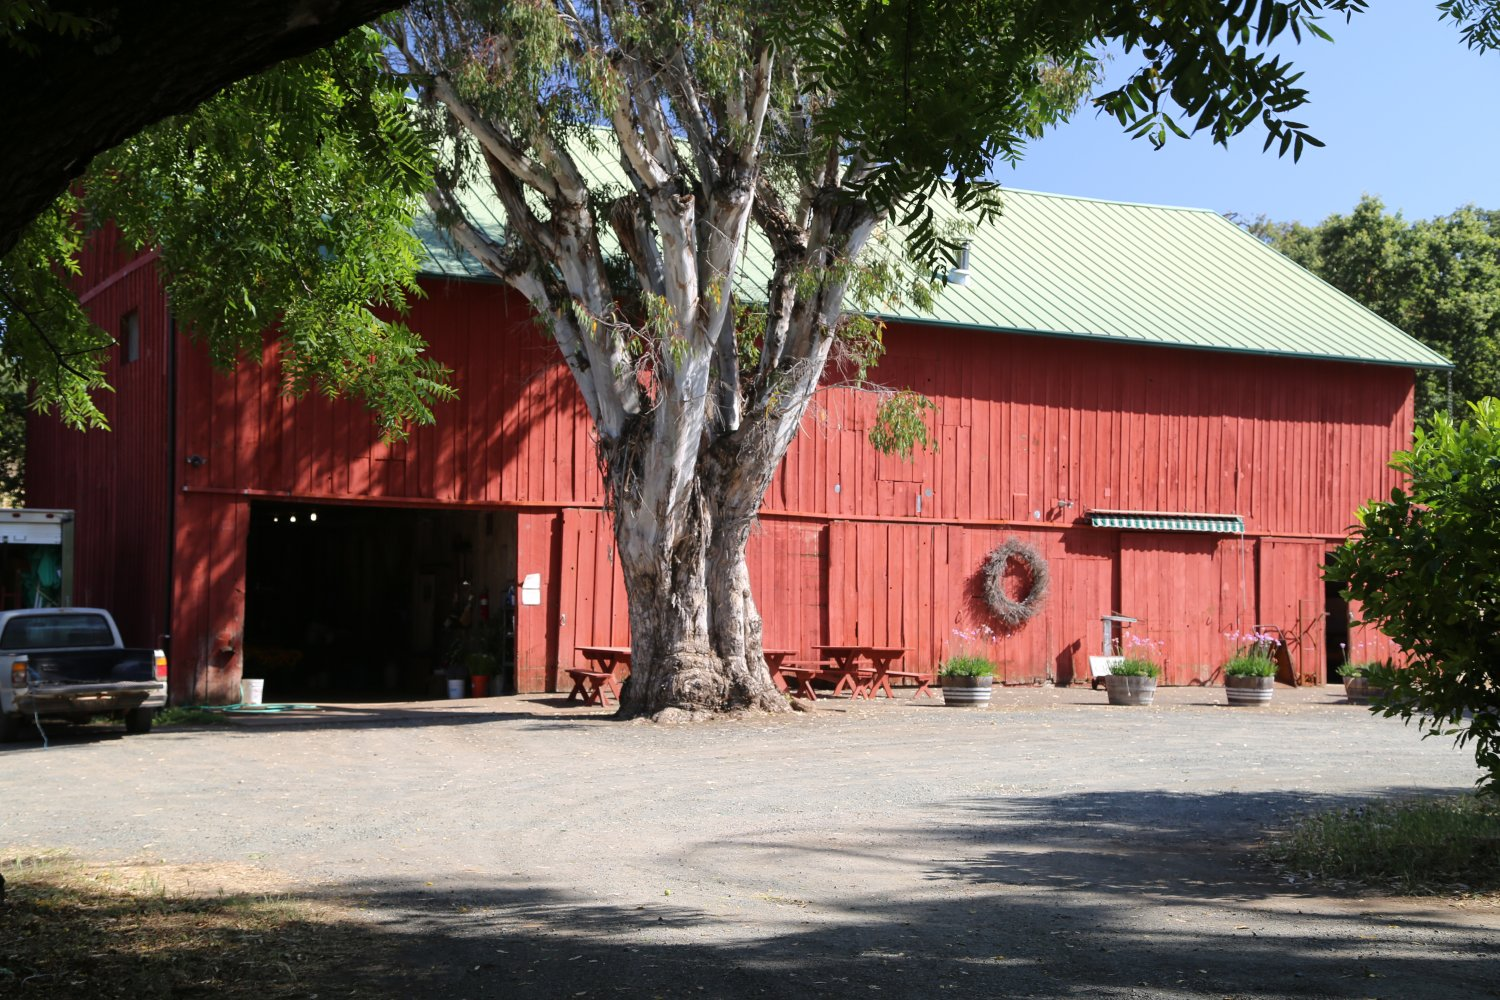 Pear Man Is Located Off Of Nielsen Road Off Of Chanate Road Just Down From  Sutter Hospital (the Old Community Hospital). This Small Bartlett Pear  Orchard Is ...